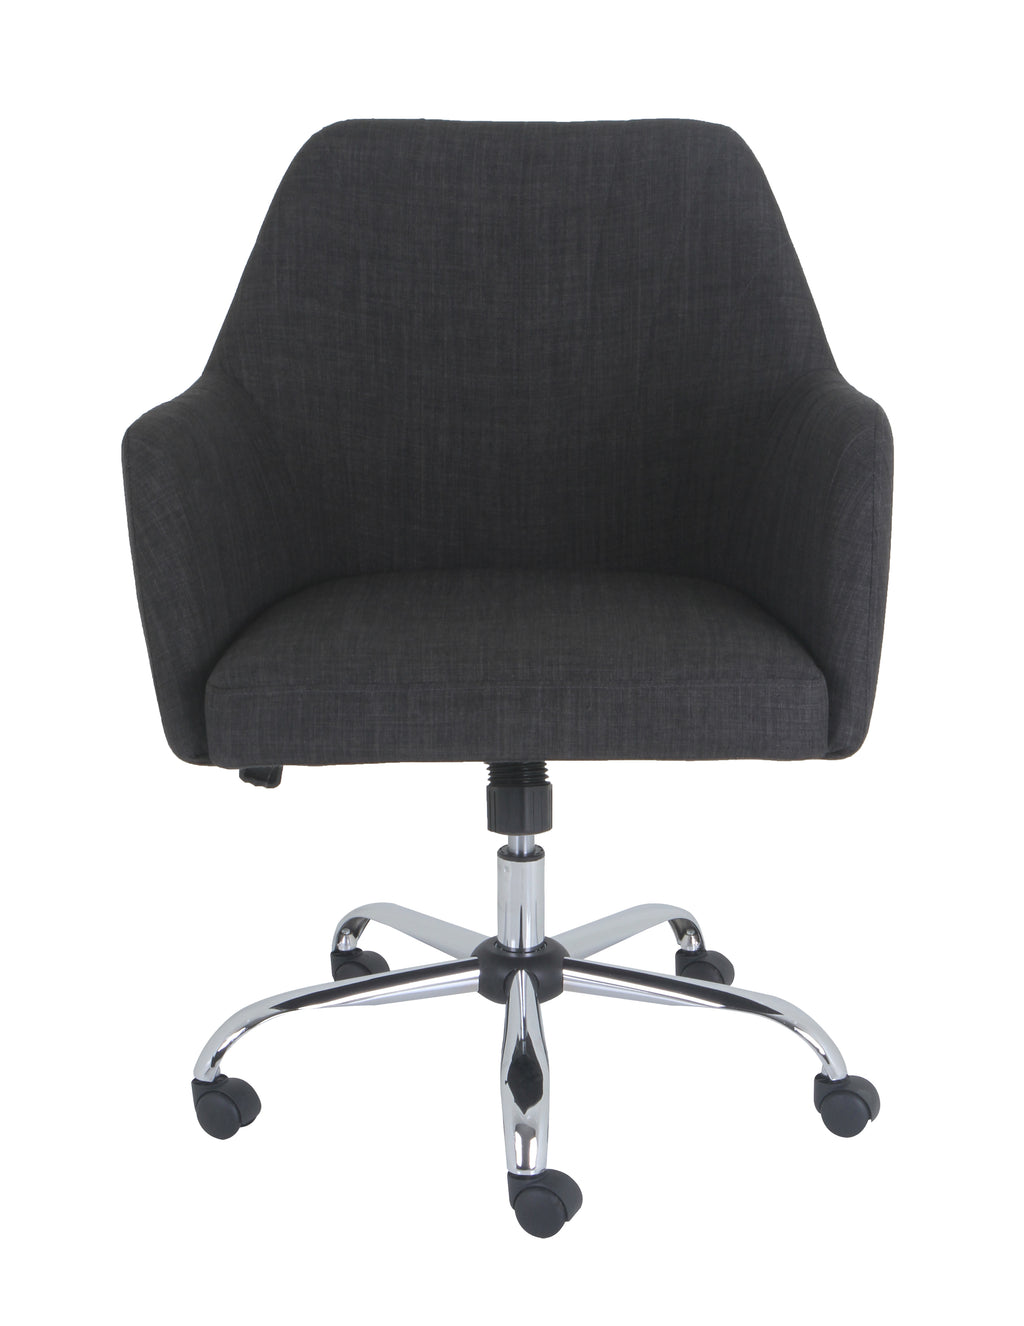 Grand&Eight NATURE Upholstered Task Chair in Dark Gray